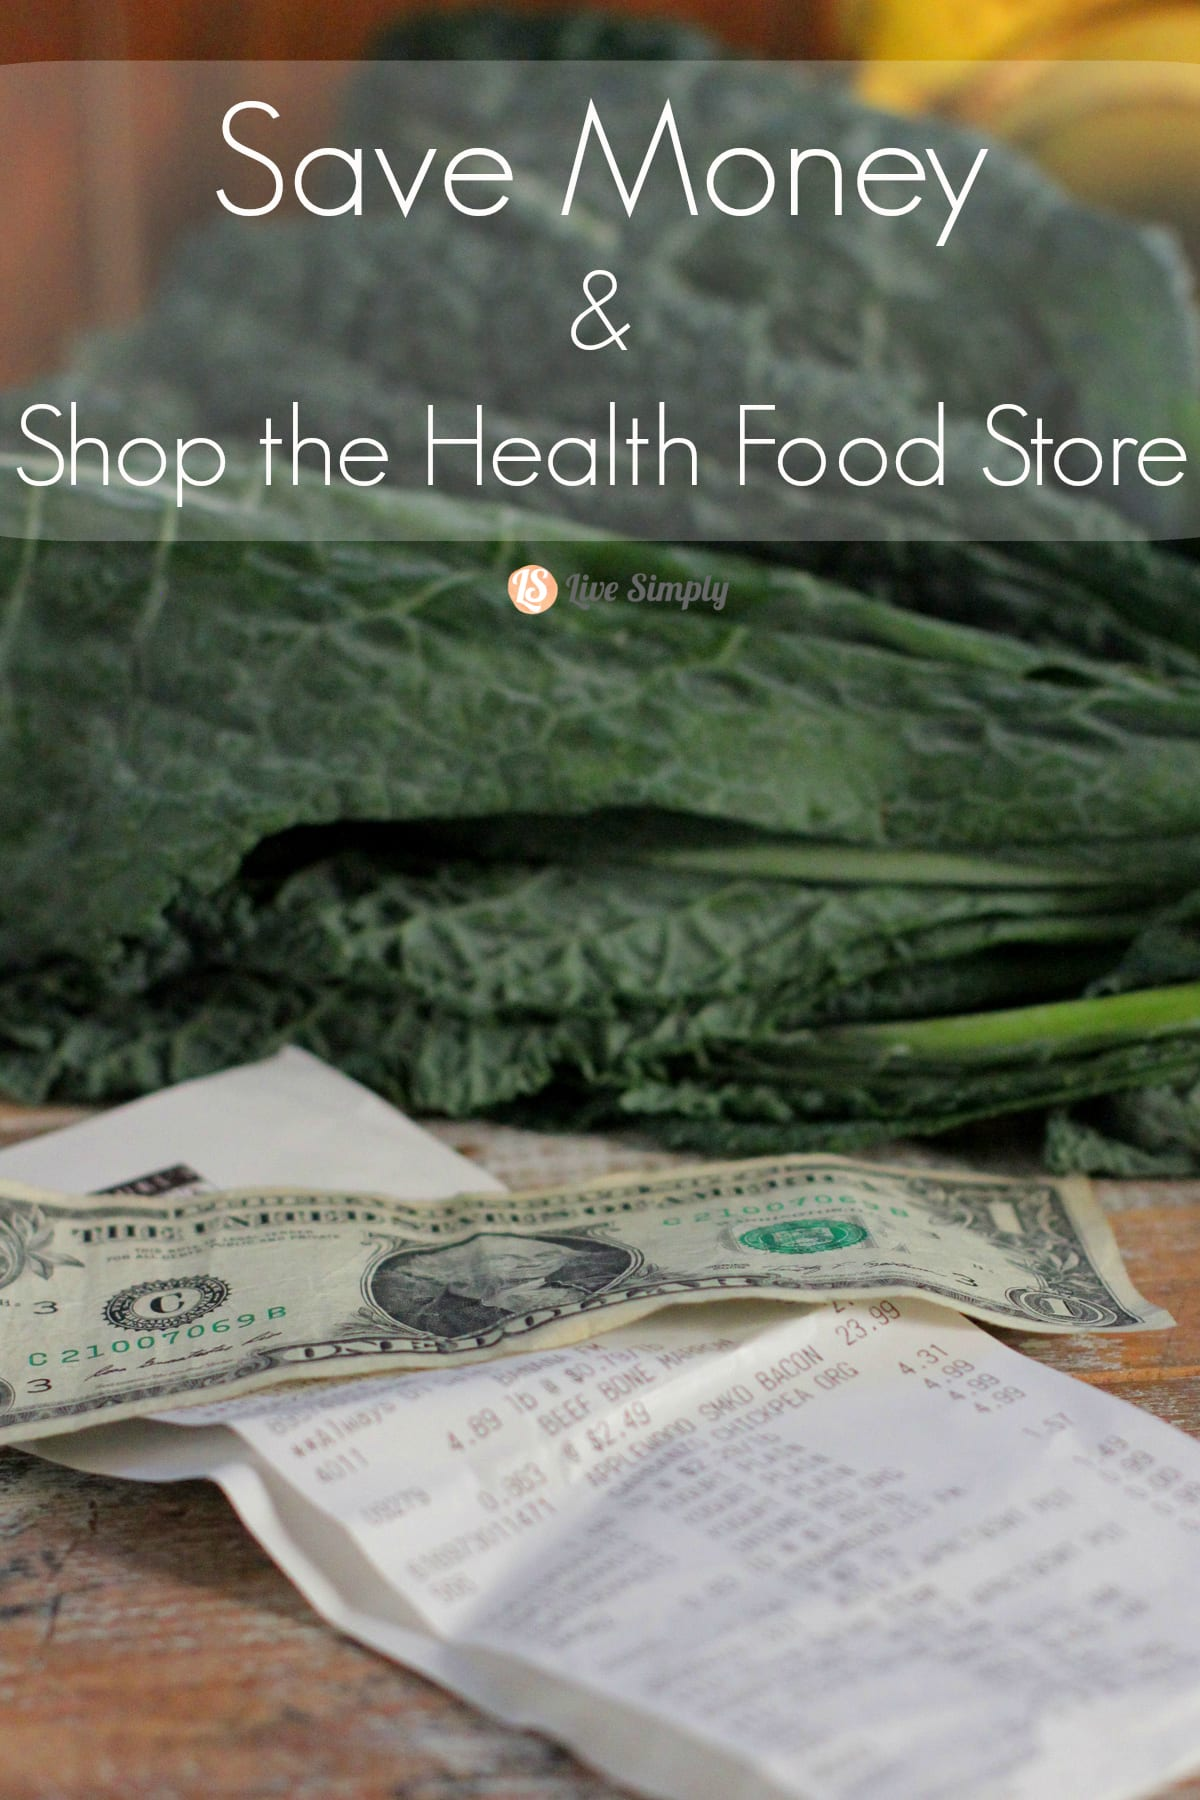 health-food-store-save-money